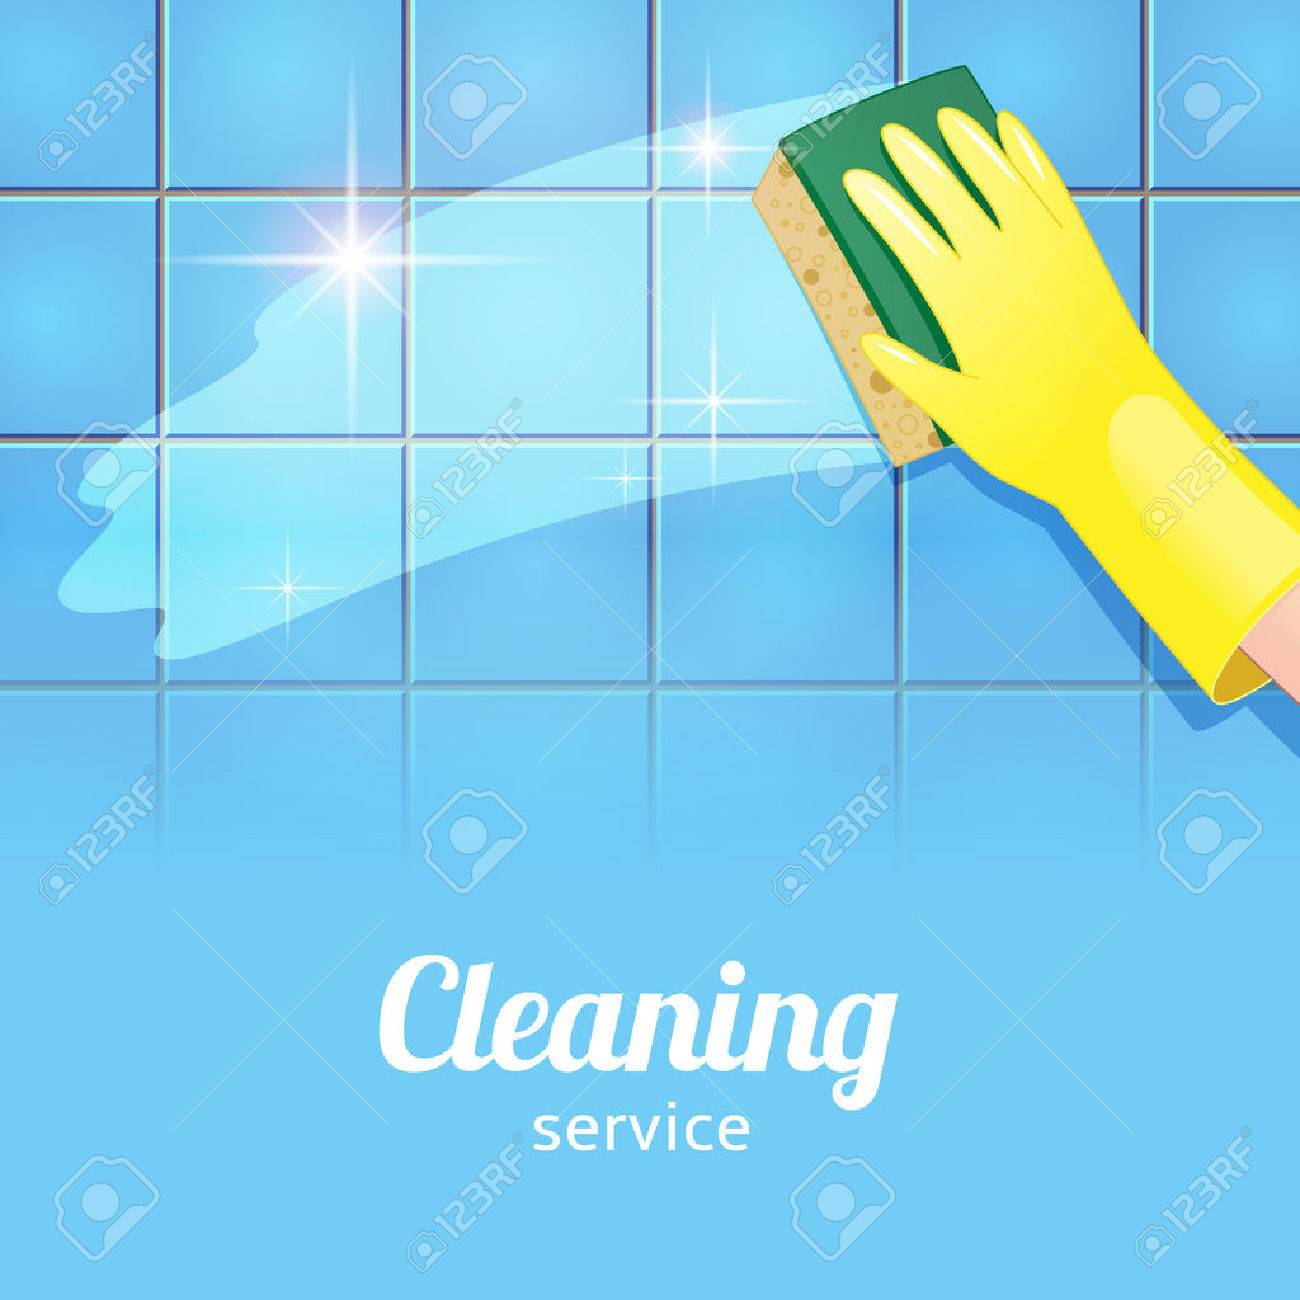 White gloves apron cleaning services - Cleaning Service Concept Background For Cleaning Service Hand In Yellow Glove Cleans The Blue